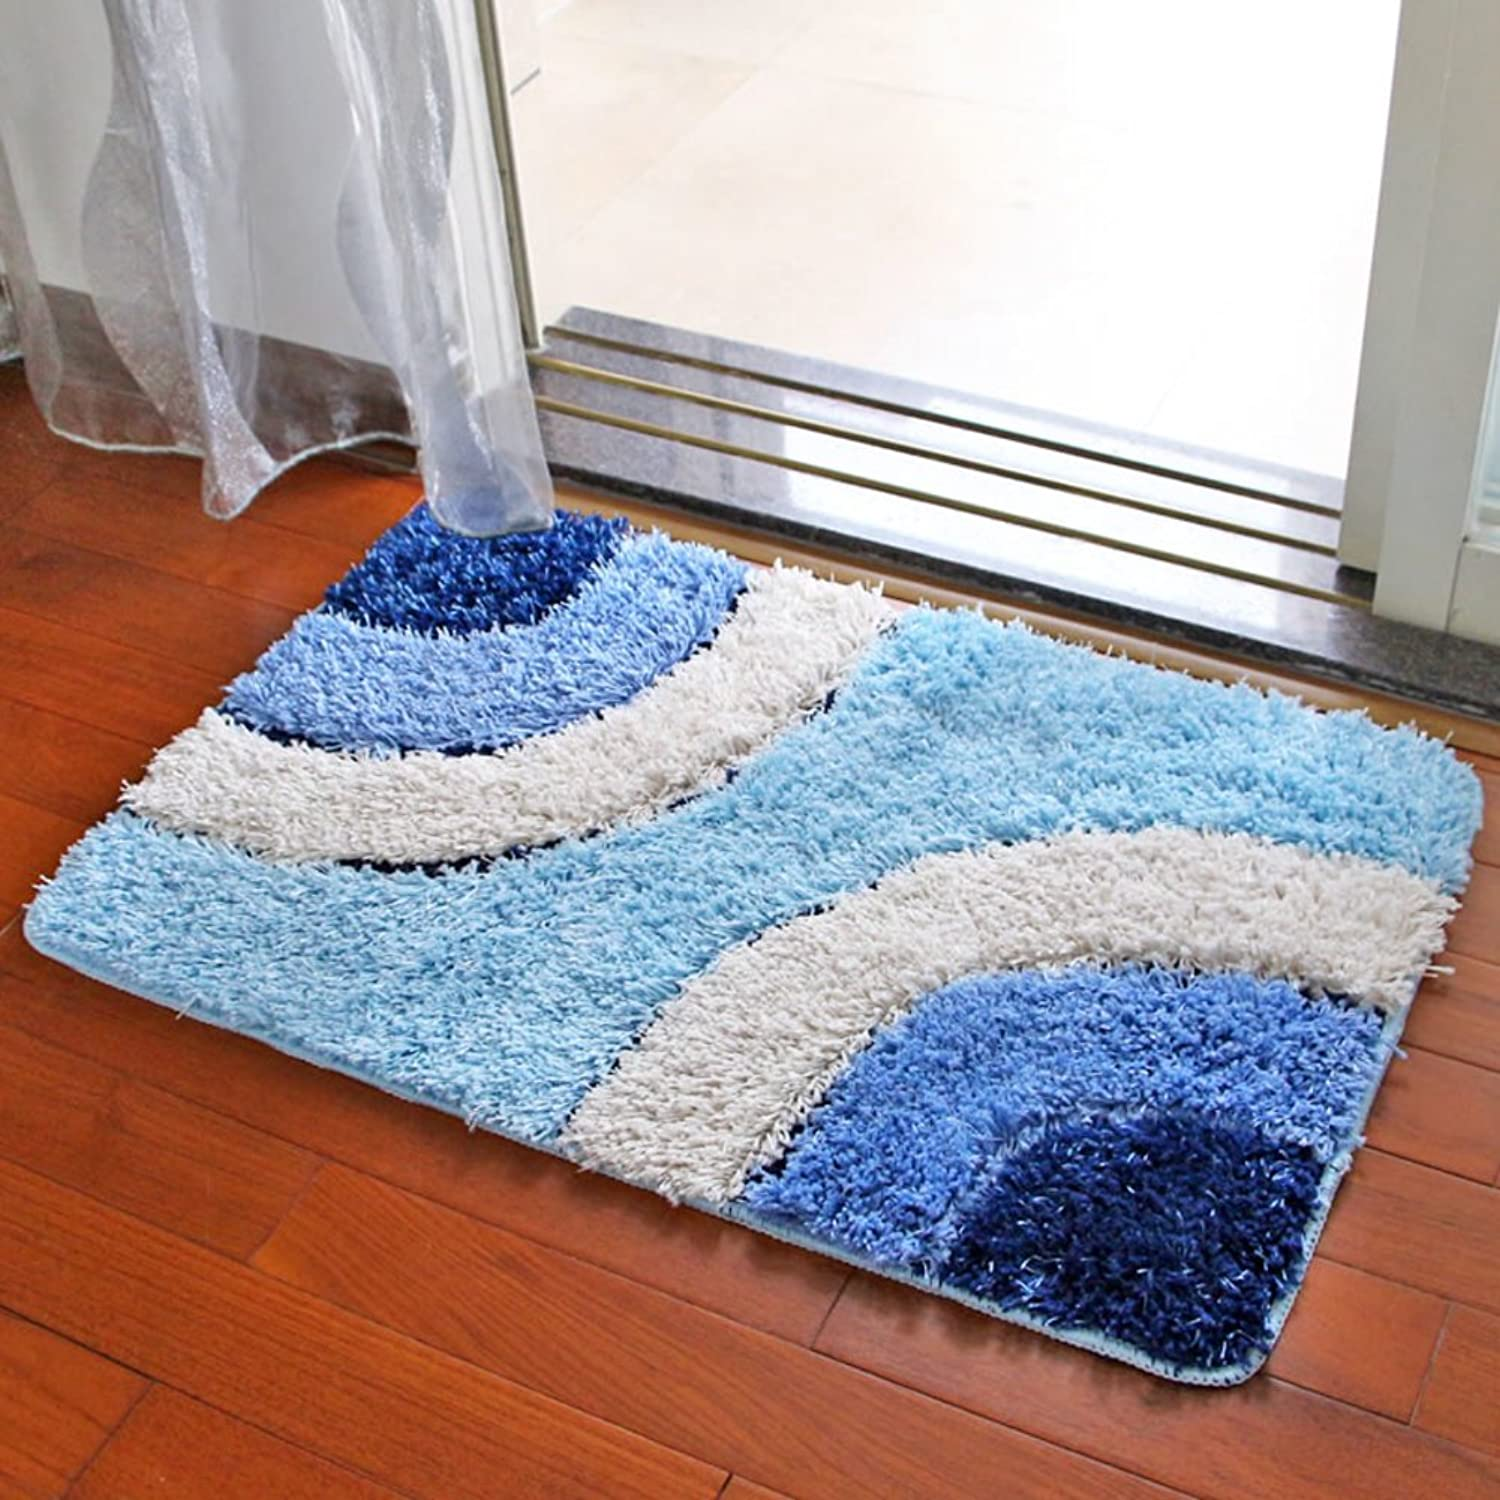 Da Jiang Ground mat Door mat Entrance Bathroom Bathroom mat Absorbent Foot mat mat Bedroom Carpet-bluee A 50x80cm(20x31inch)